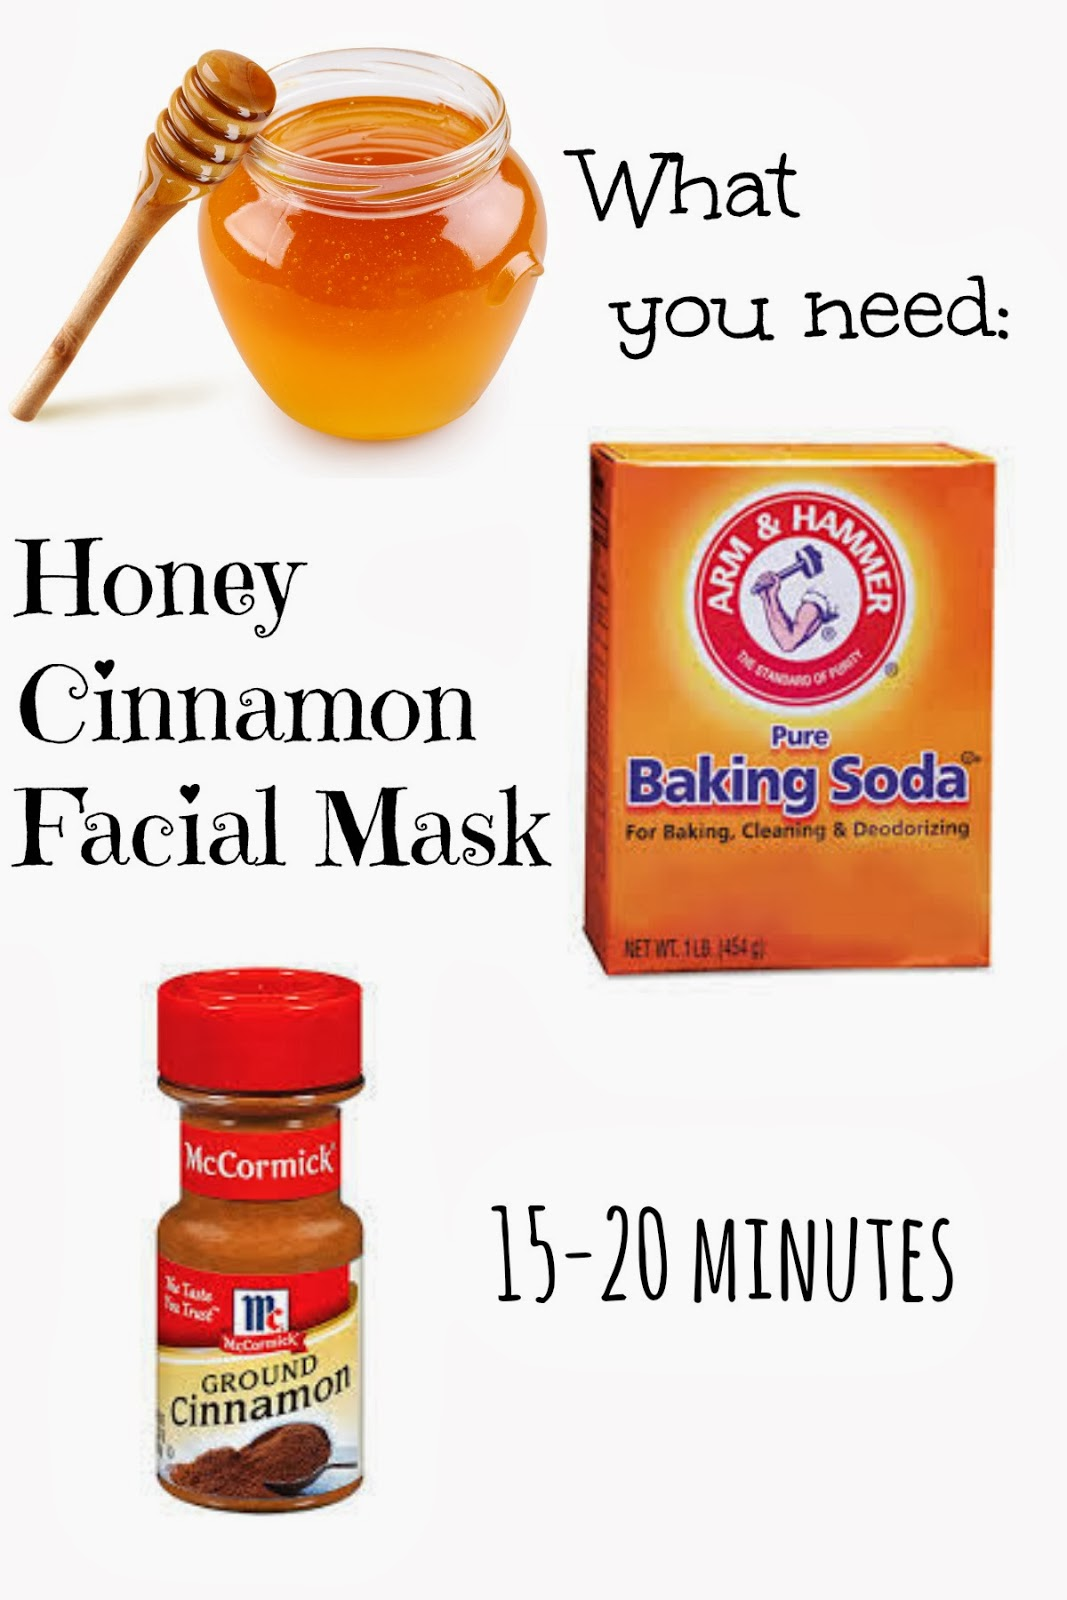 Honey Cinnamon Face Mask